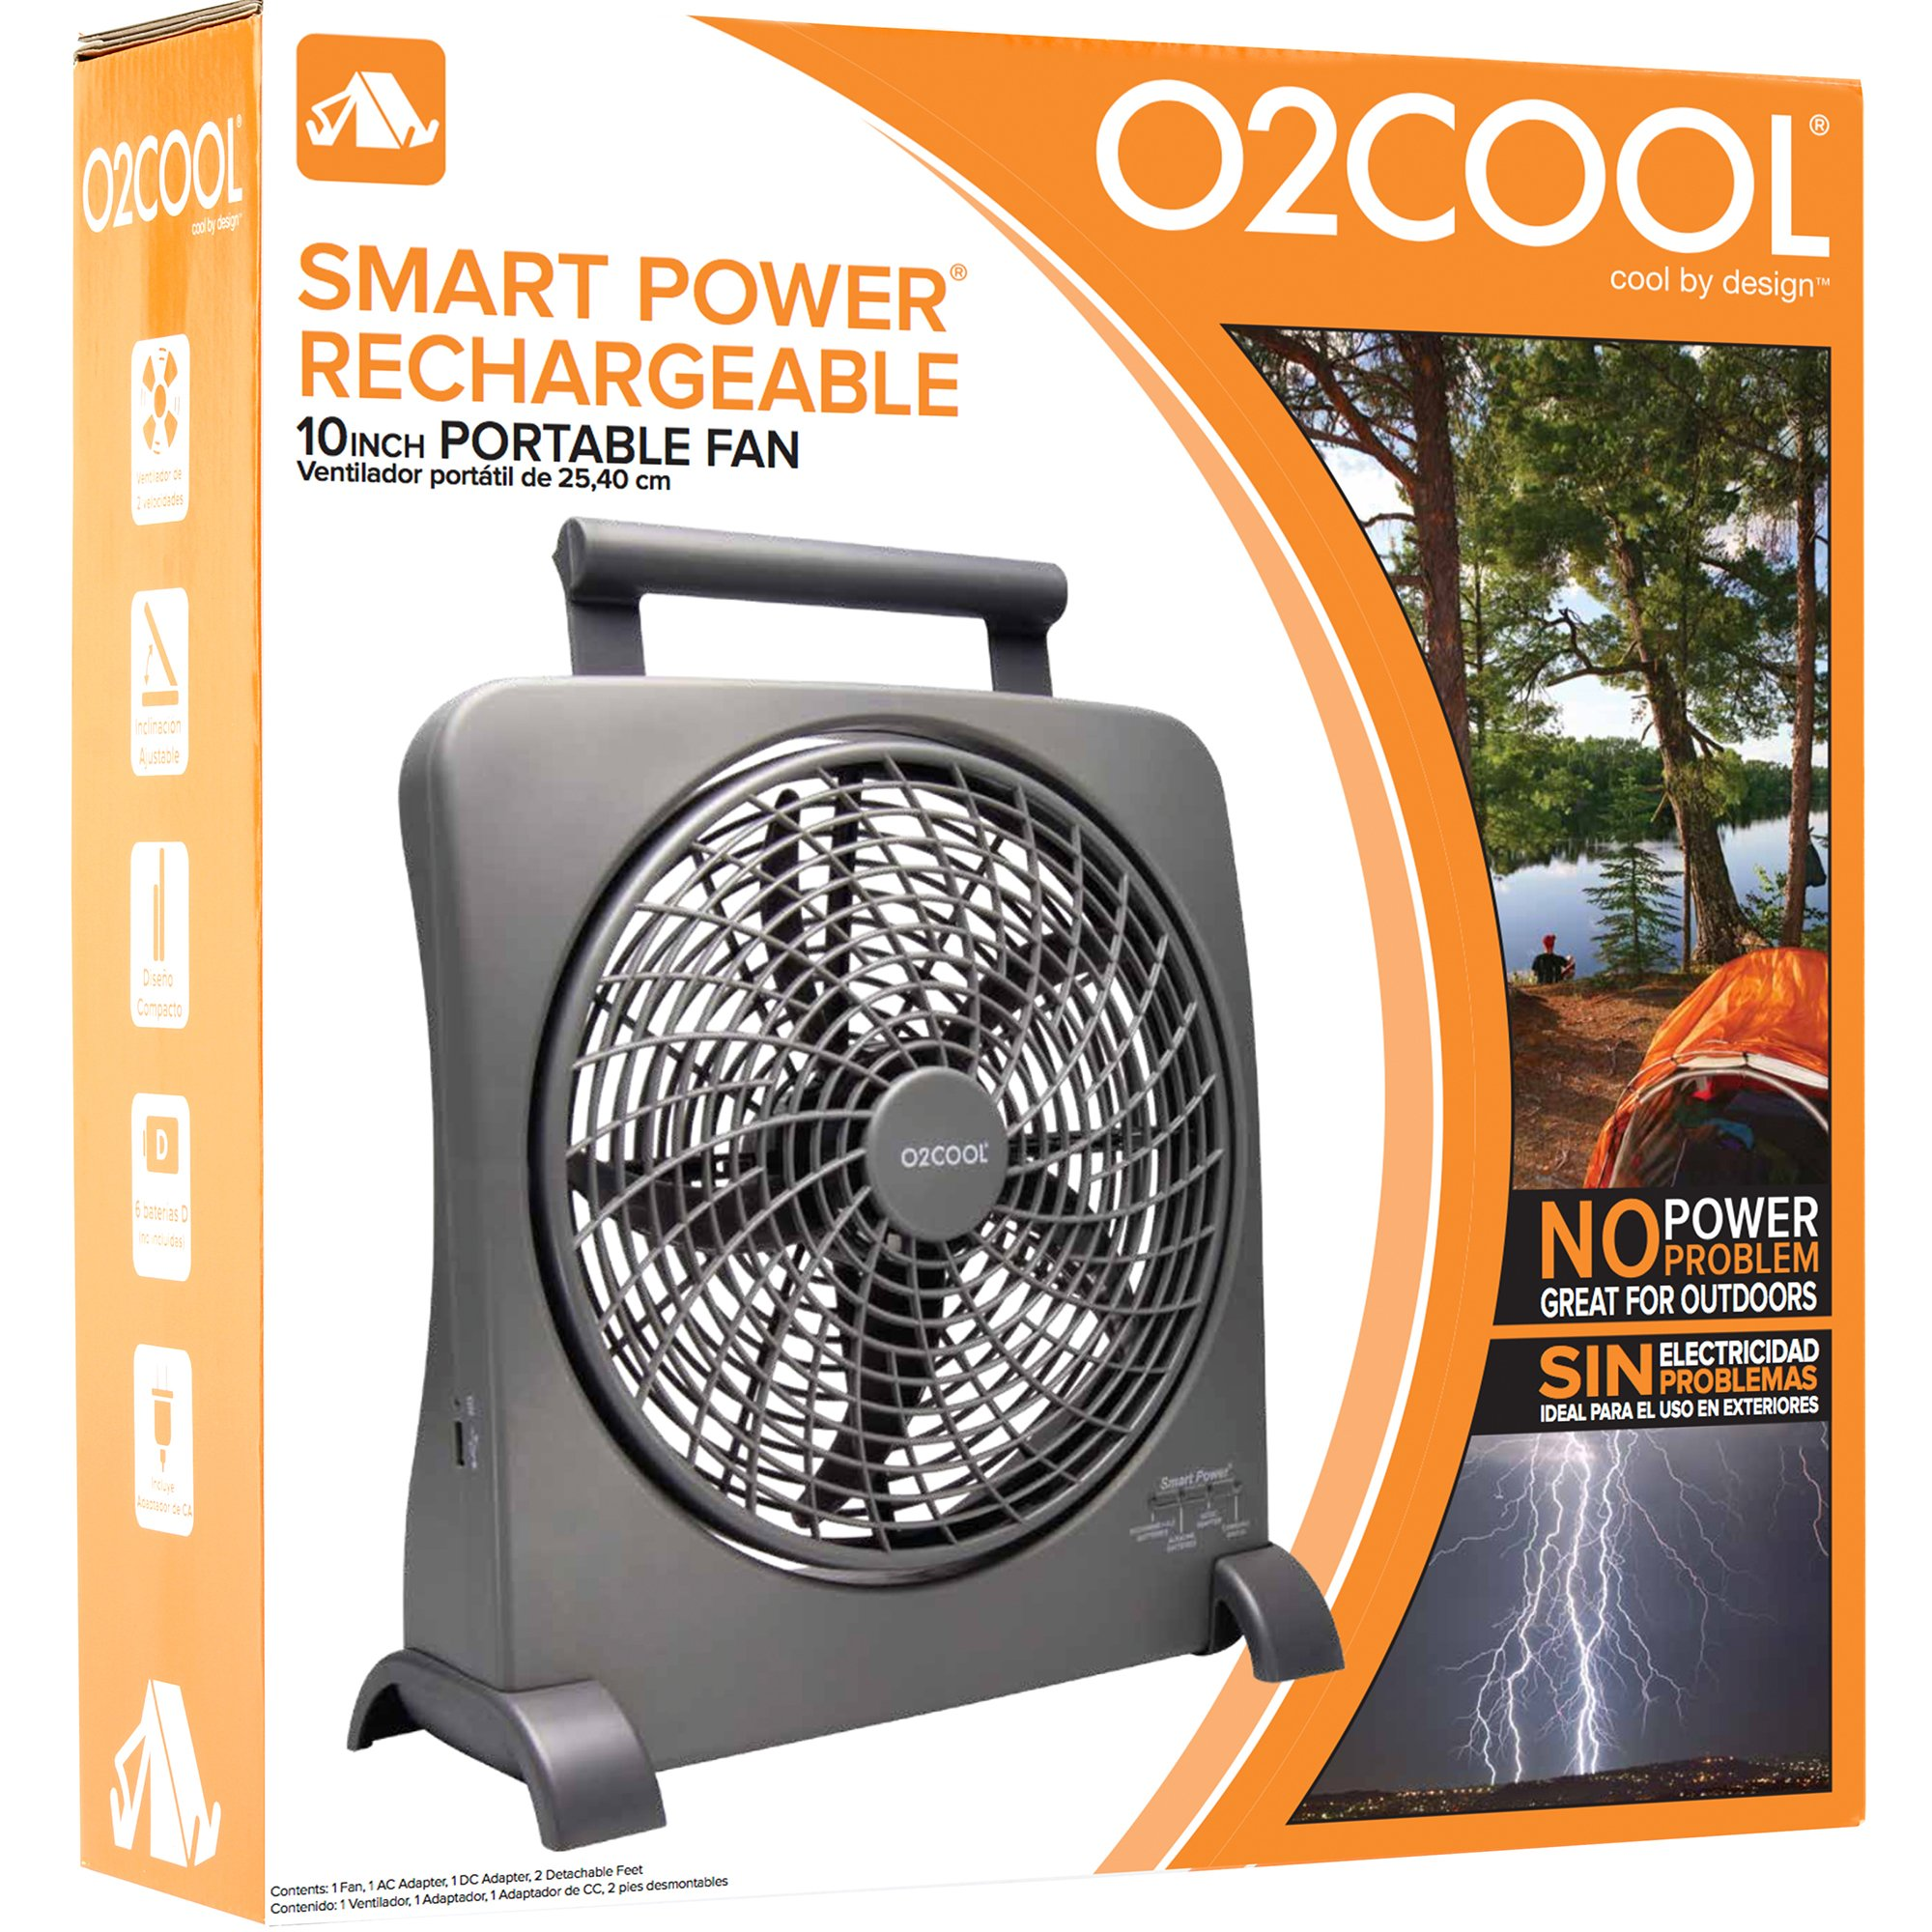 O2COOL 10-Inch Portable Smart Power Fan with AC Adapter & USB Charging Port, 8-D Battery Fan, Cell Phone Charging Fan, 10-Inch Compact Portable Battery Fan, Smart Power, Pivoting Fan Head by O2COOL (Image #4)